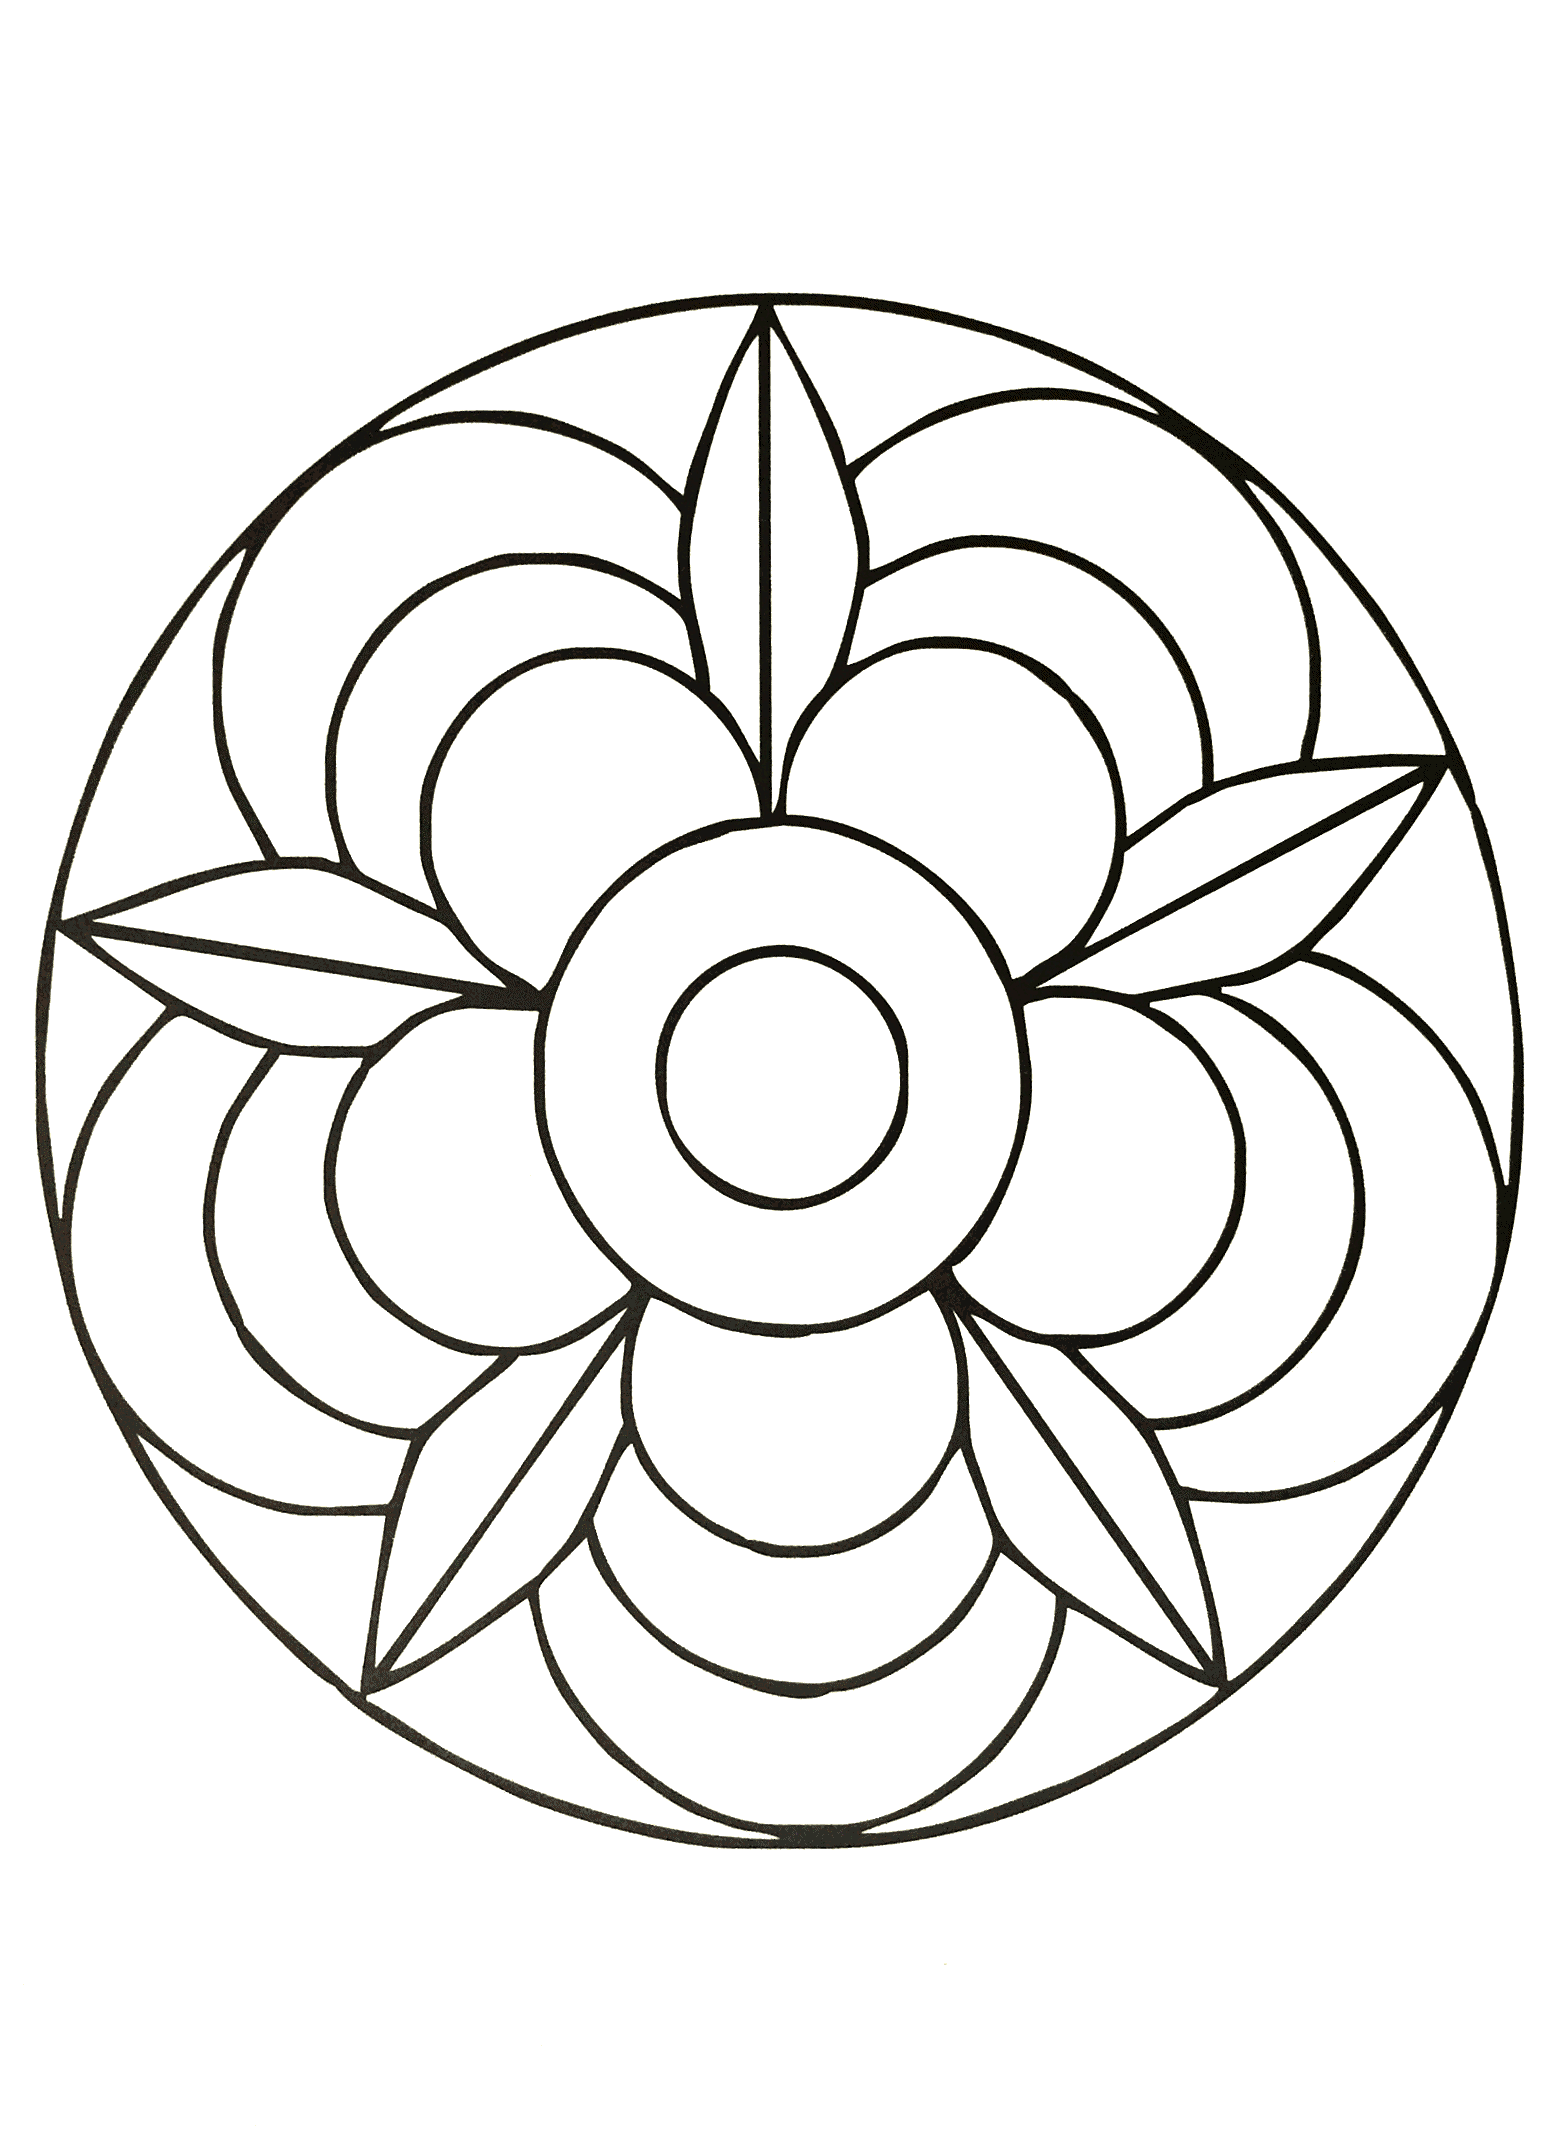 Pin By Lee Therainbowfairy On Craft Mandala Coloring Pages Mandala Coloring Simple Mandala